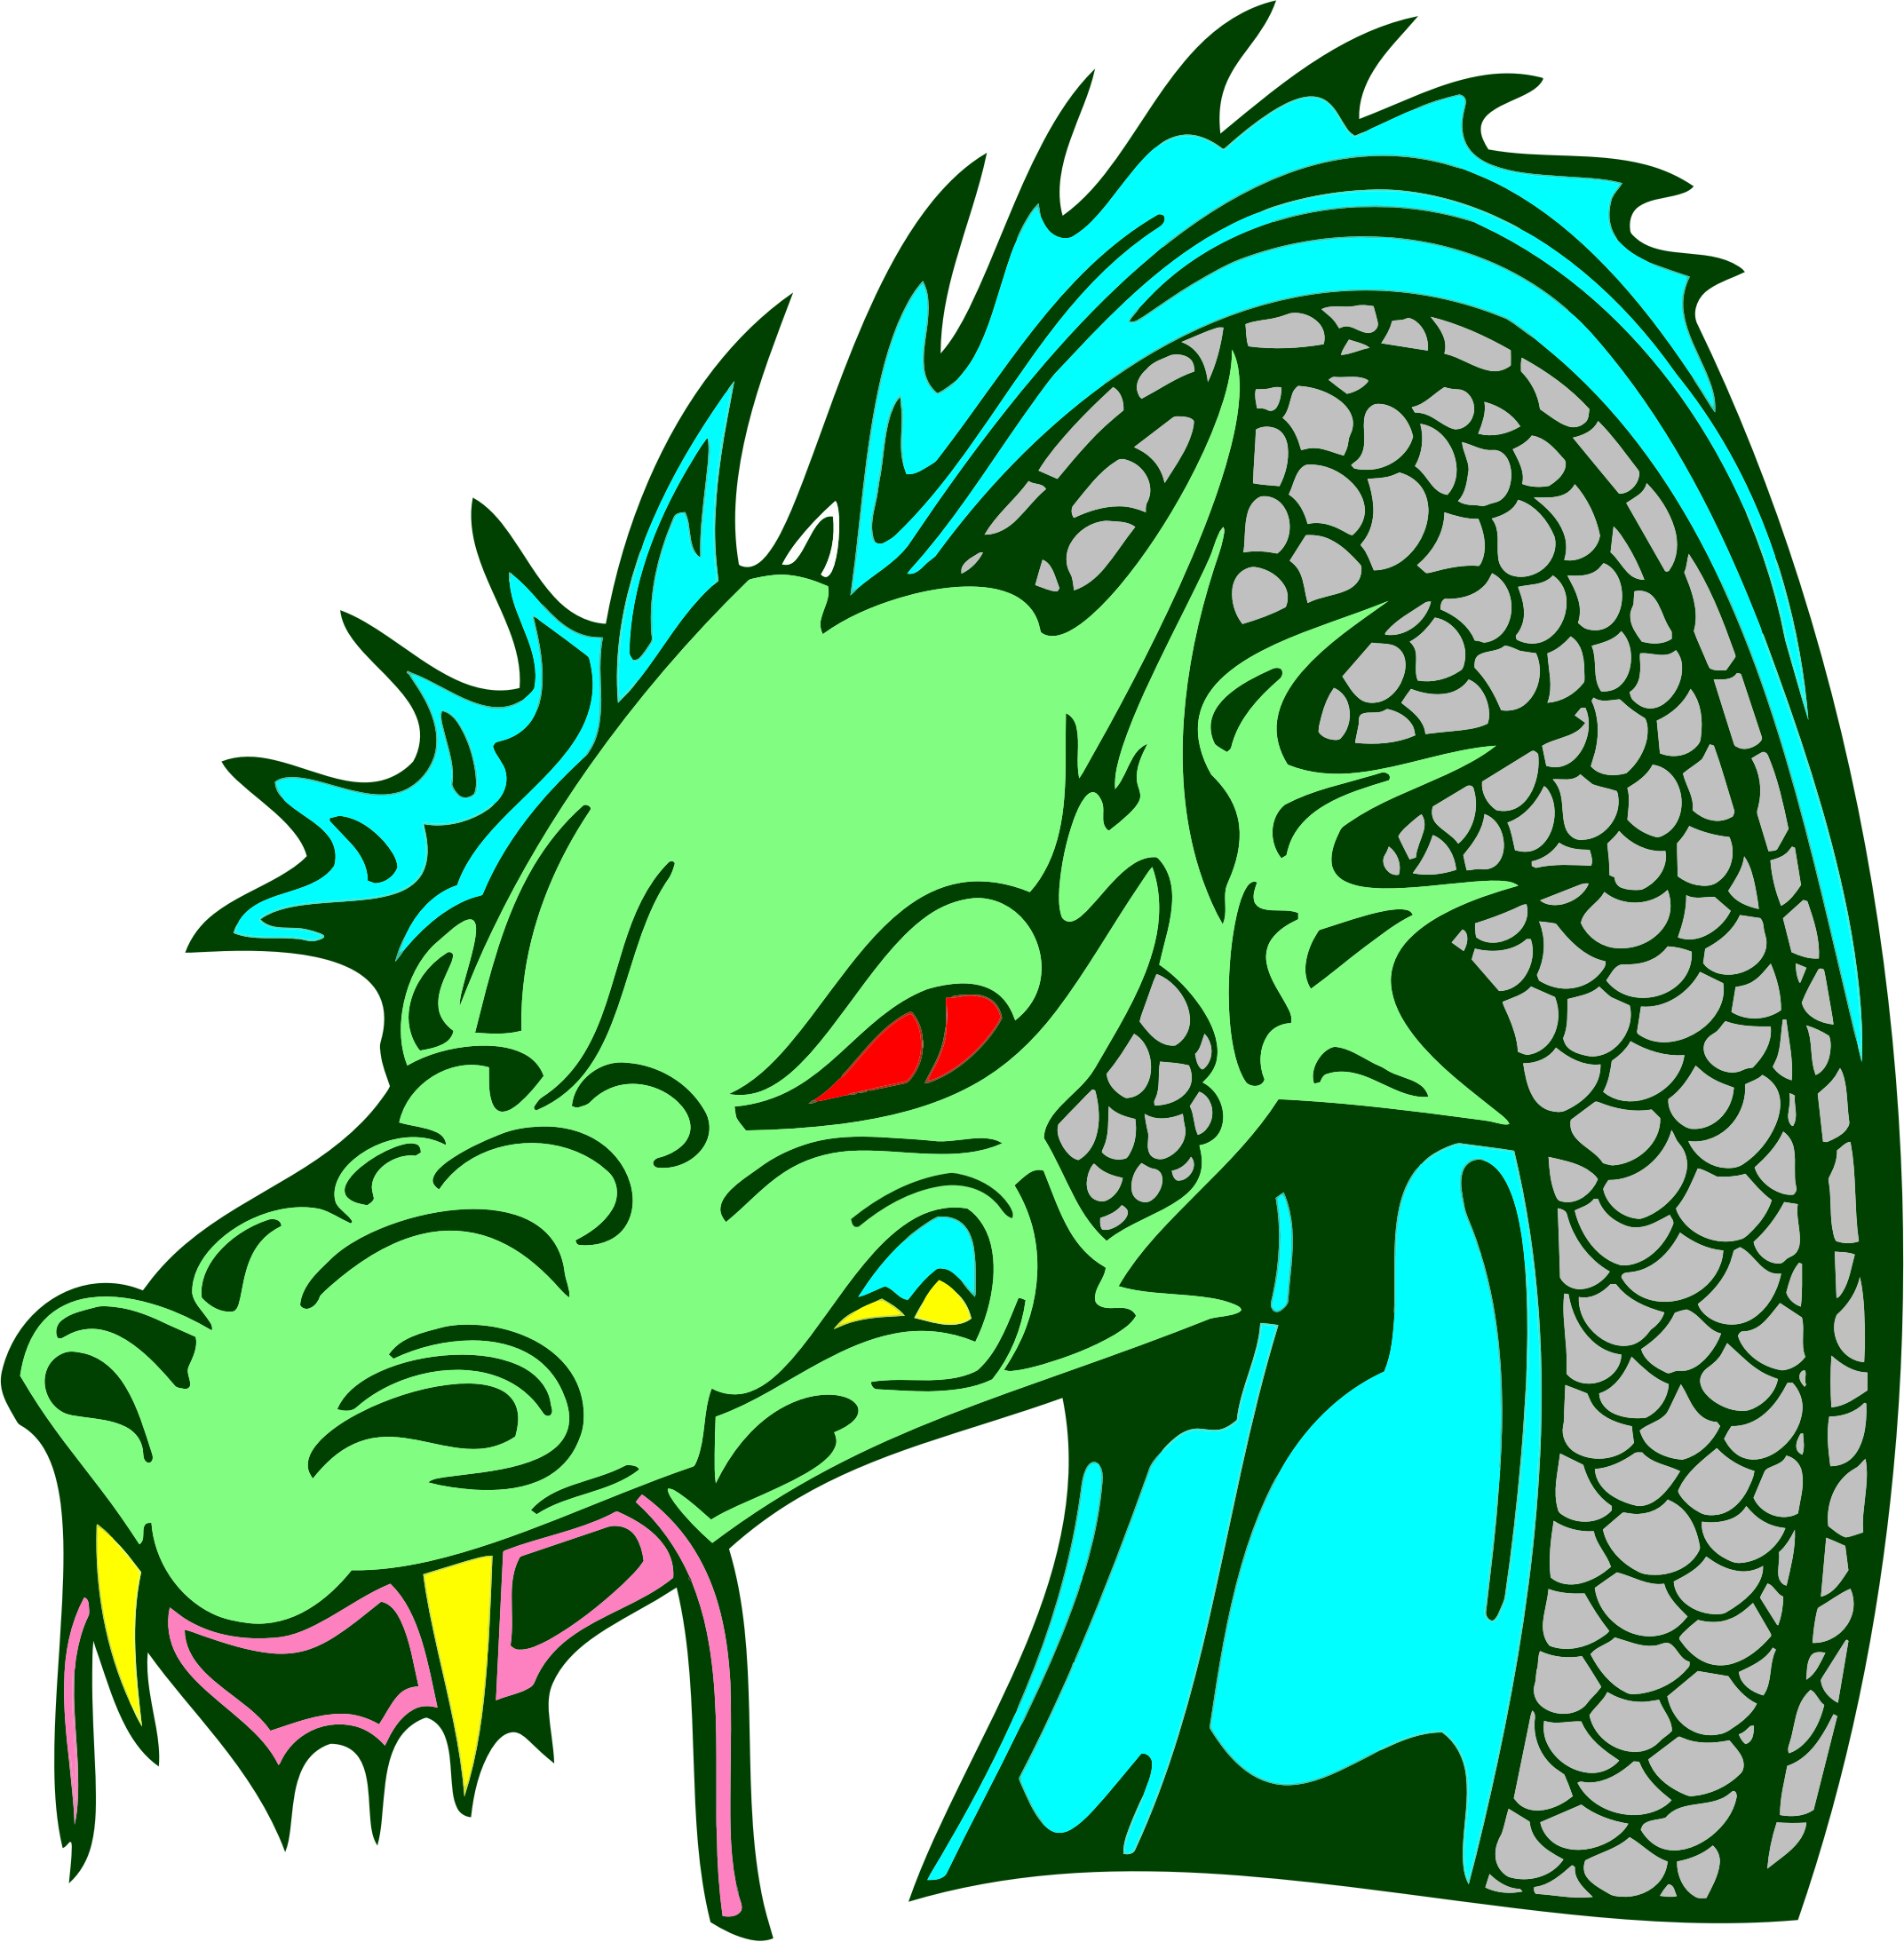 Angry Green Dragon by GDJ